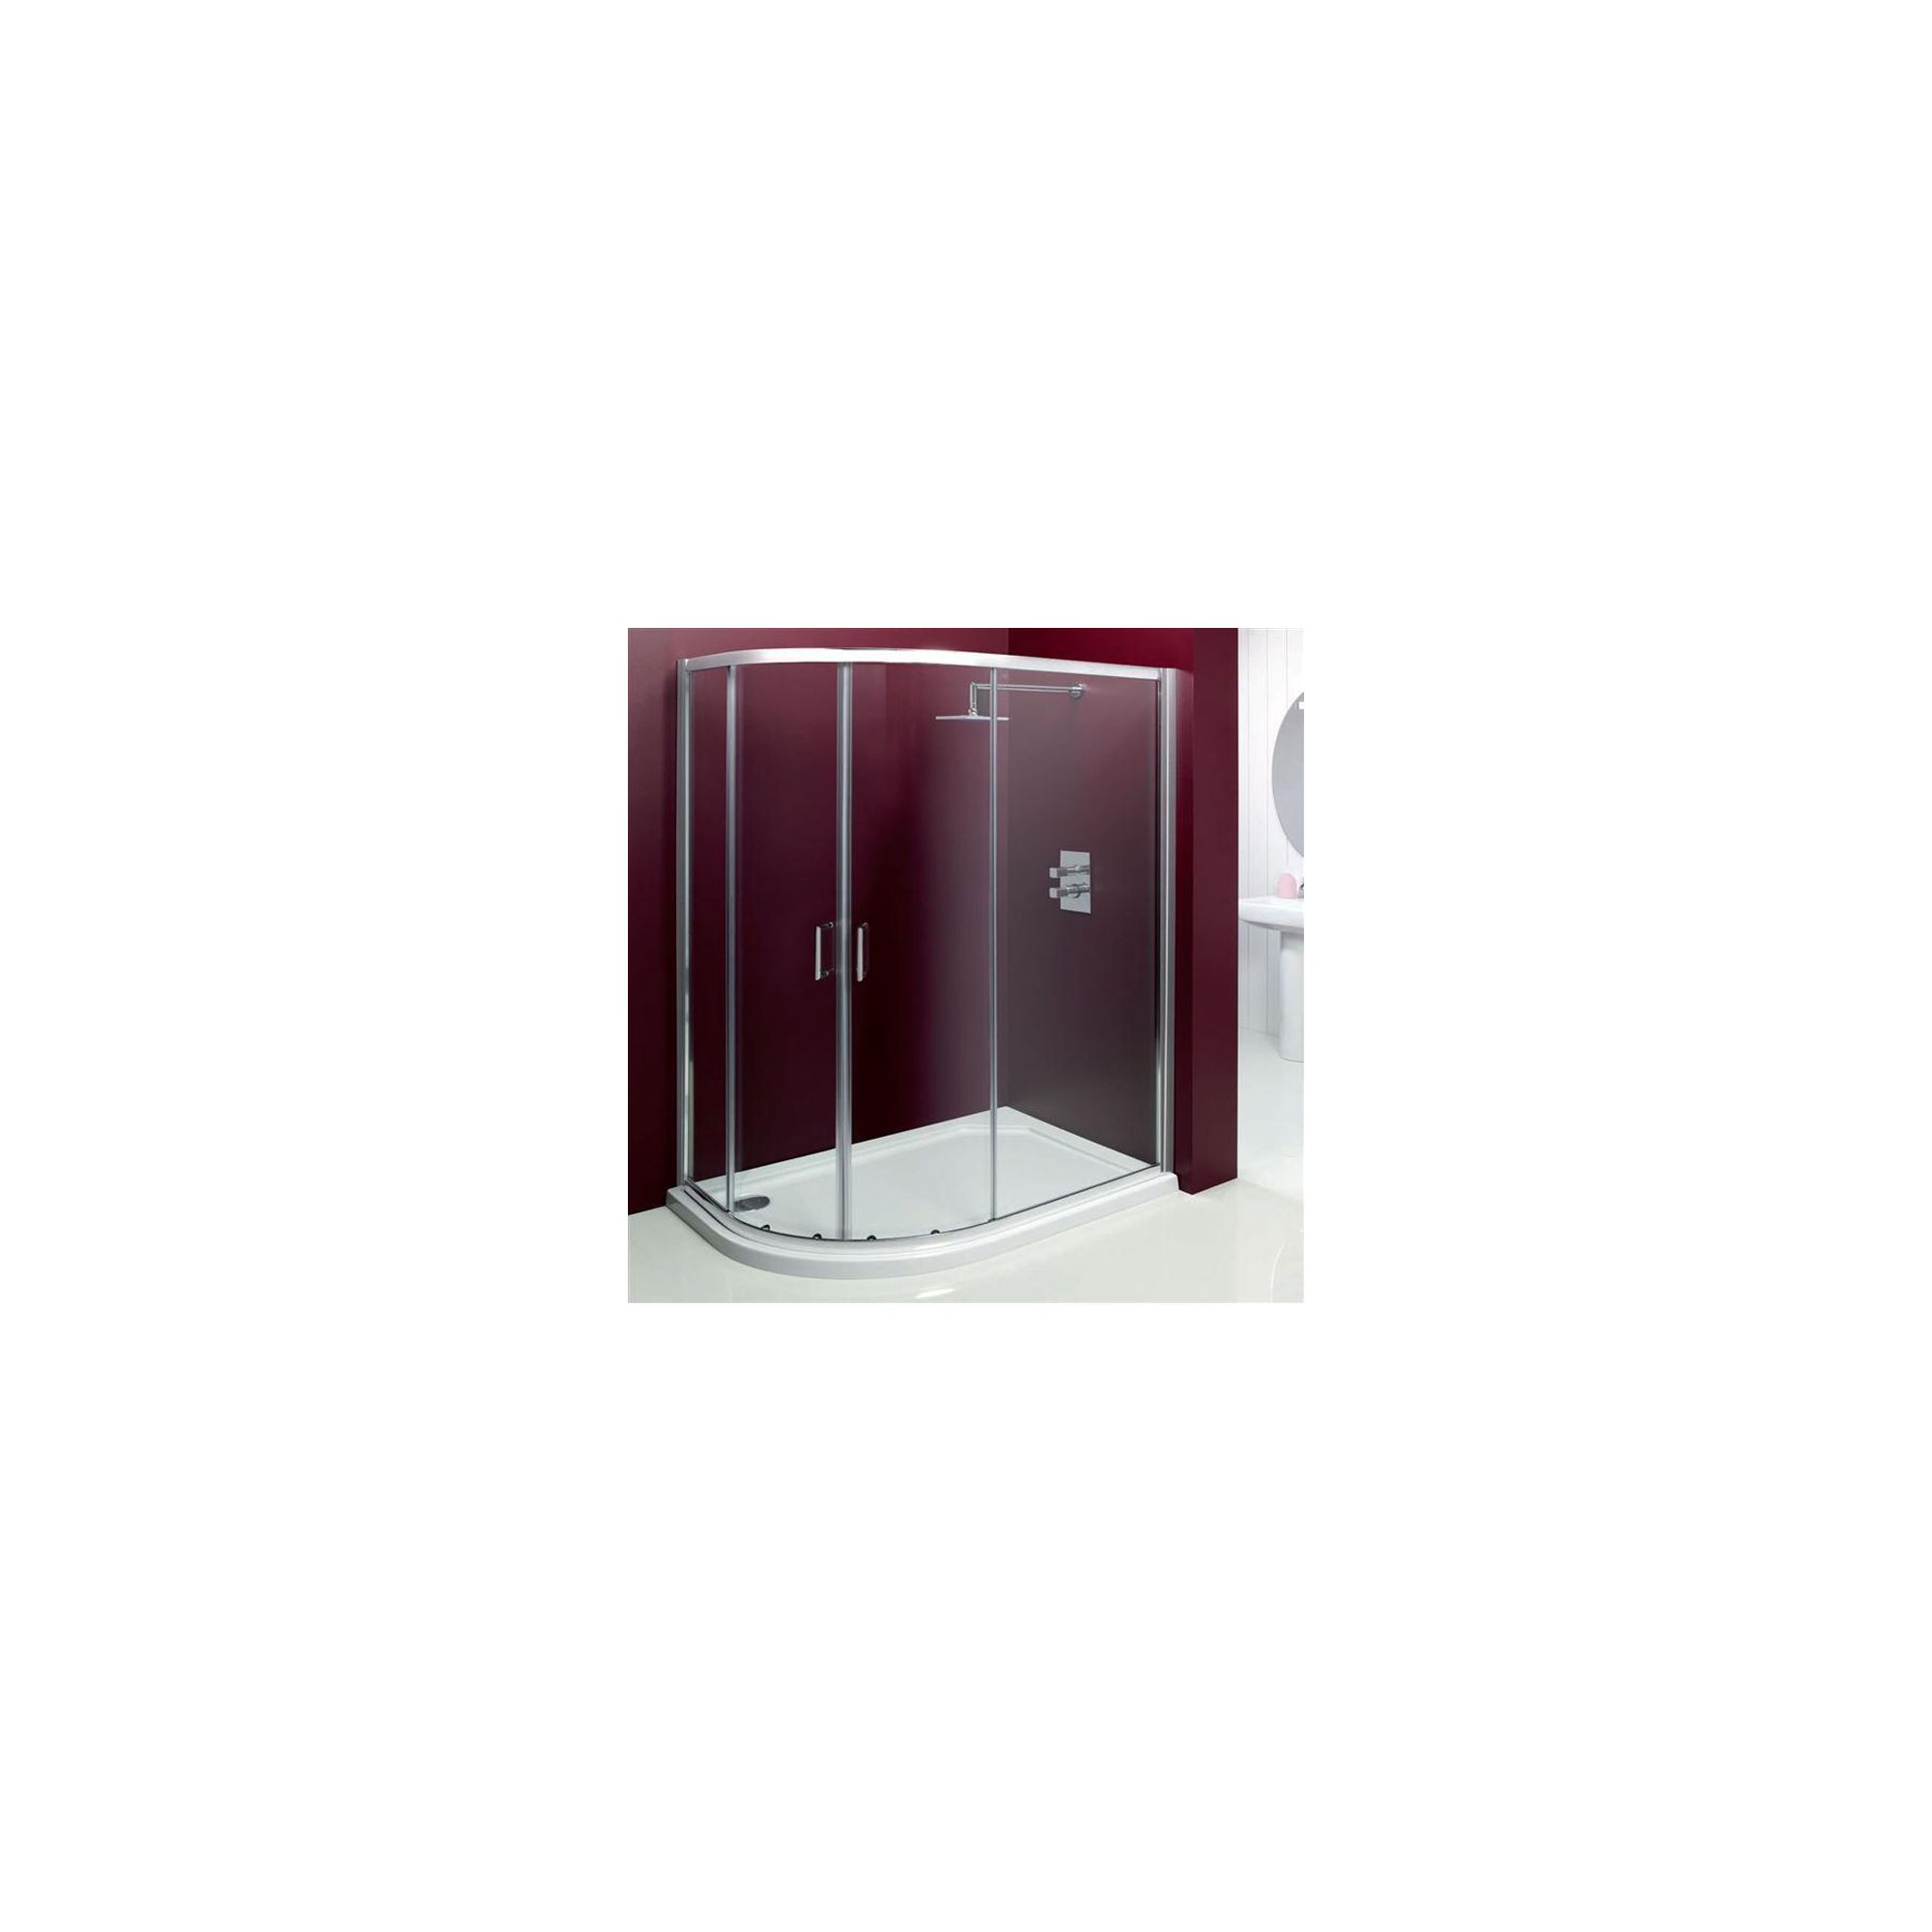 Merlyn Vivid Entree Offset Quadrant Shower Door, 1000mm x 800mm, 6mm Glass at Tesco Direct